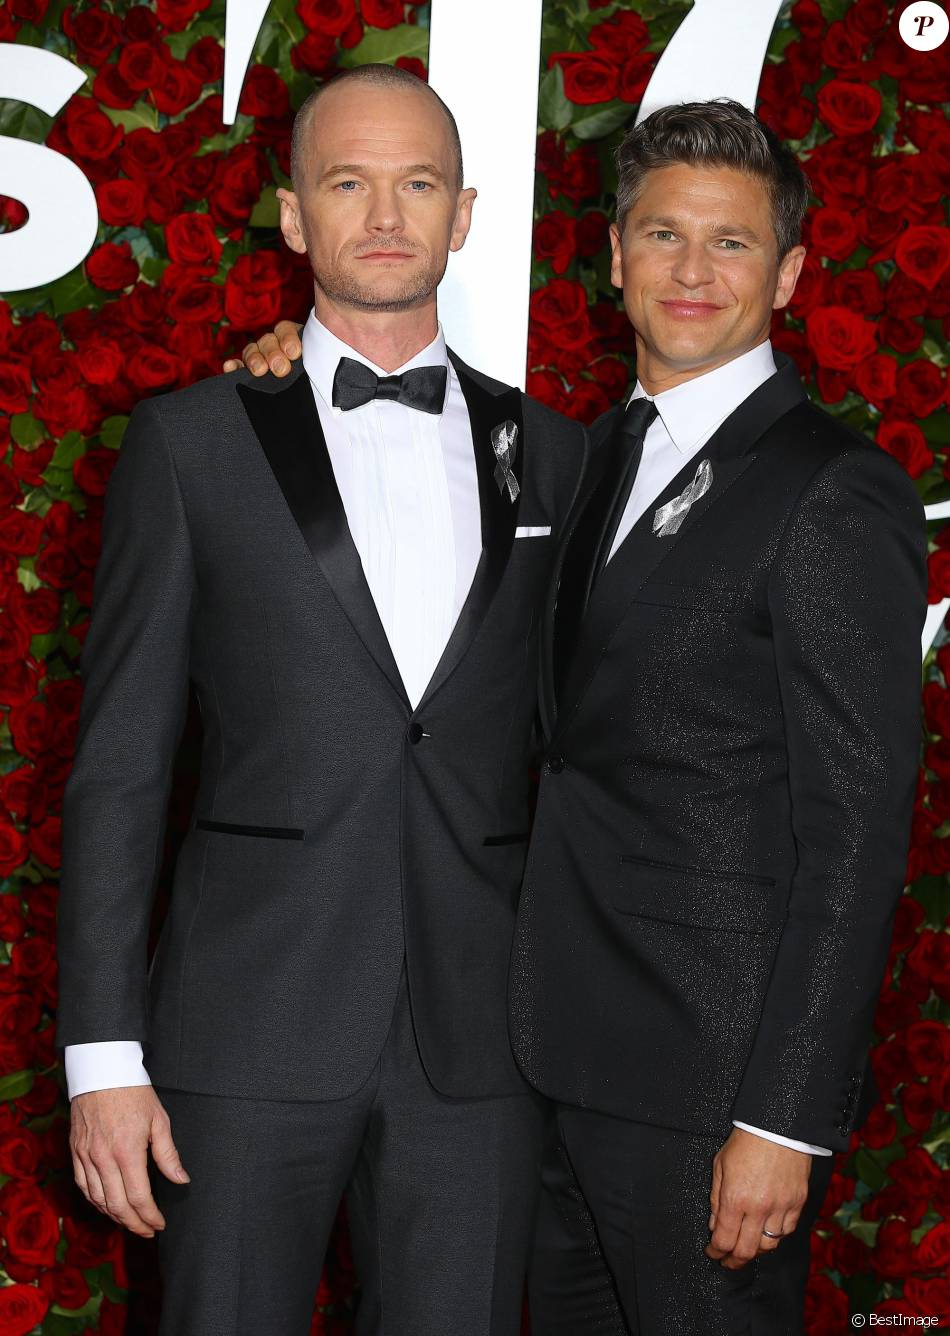 Neil Patrick Harris et son mari David Burtka - 70e cérémonie annuelle des Tony Awards au Beacon Theatre à New York, le 12 juin 2016.